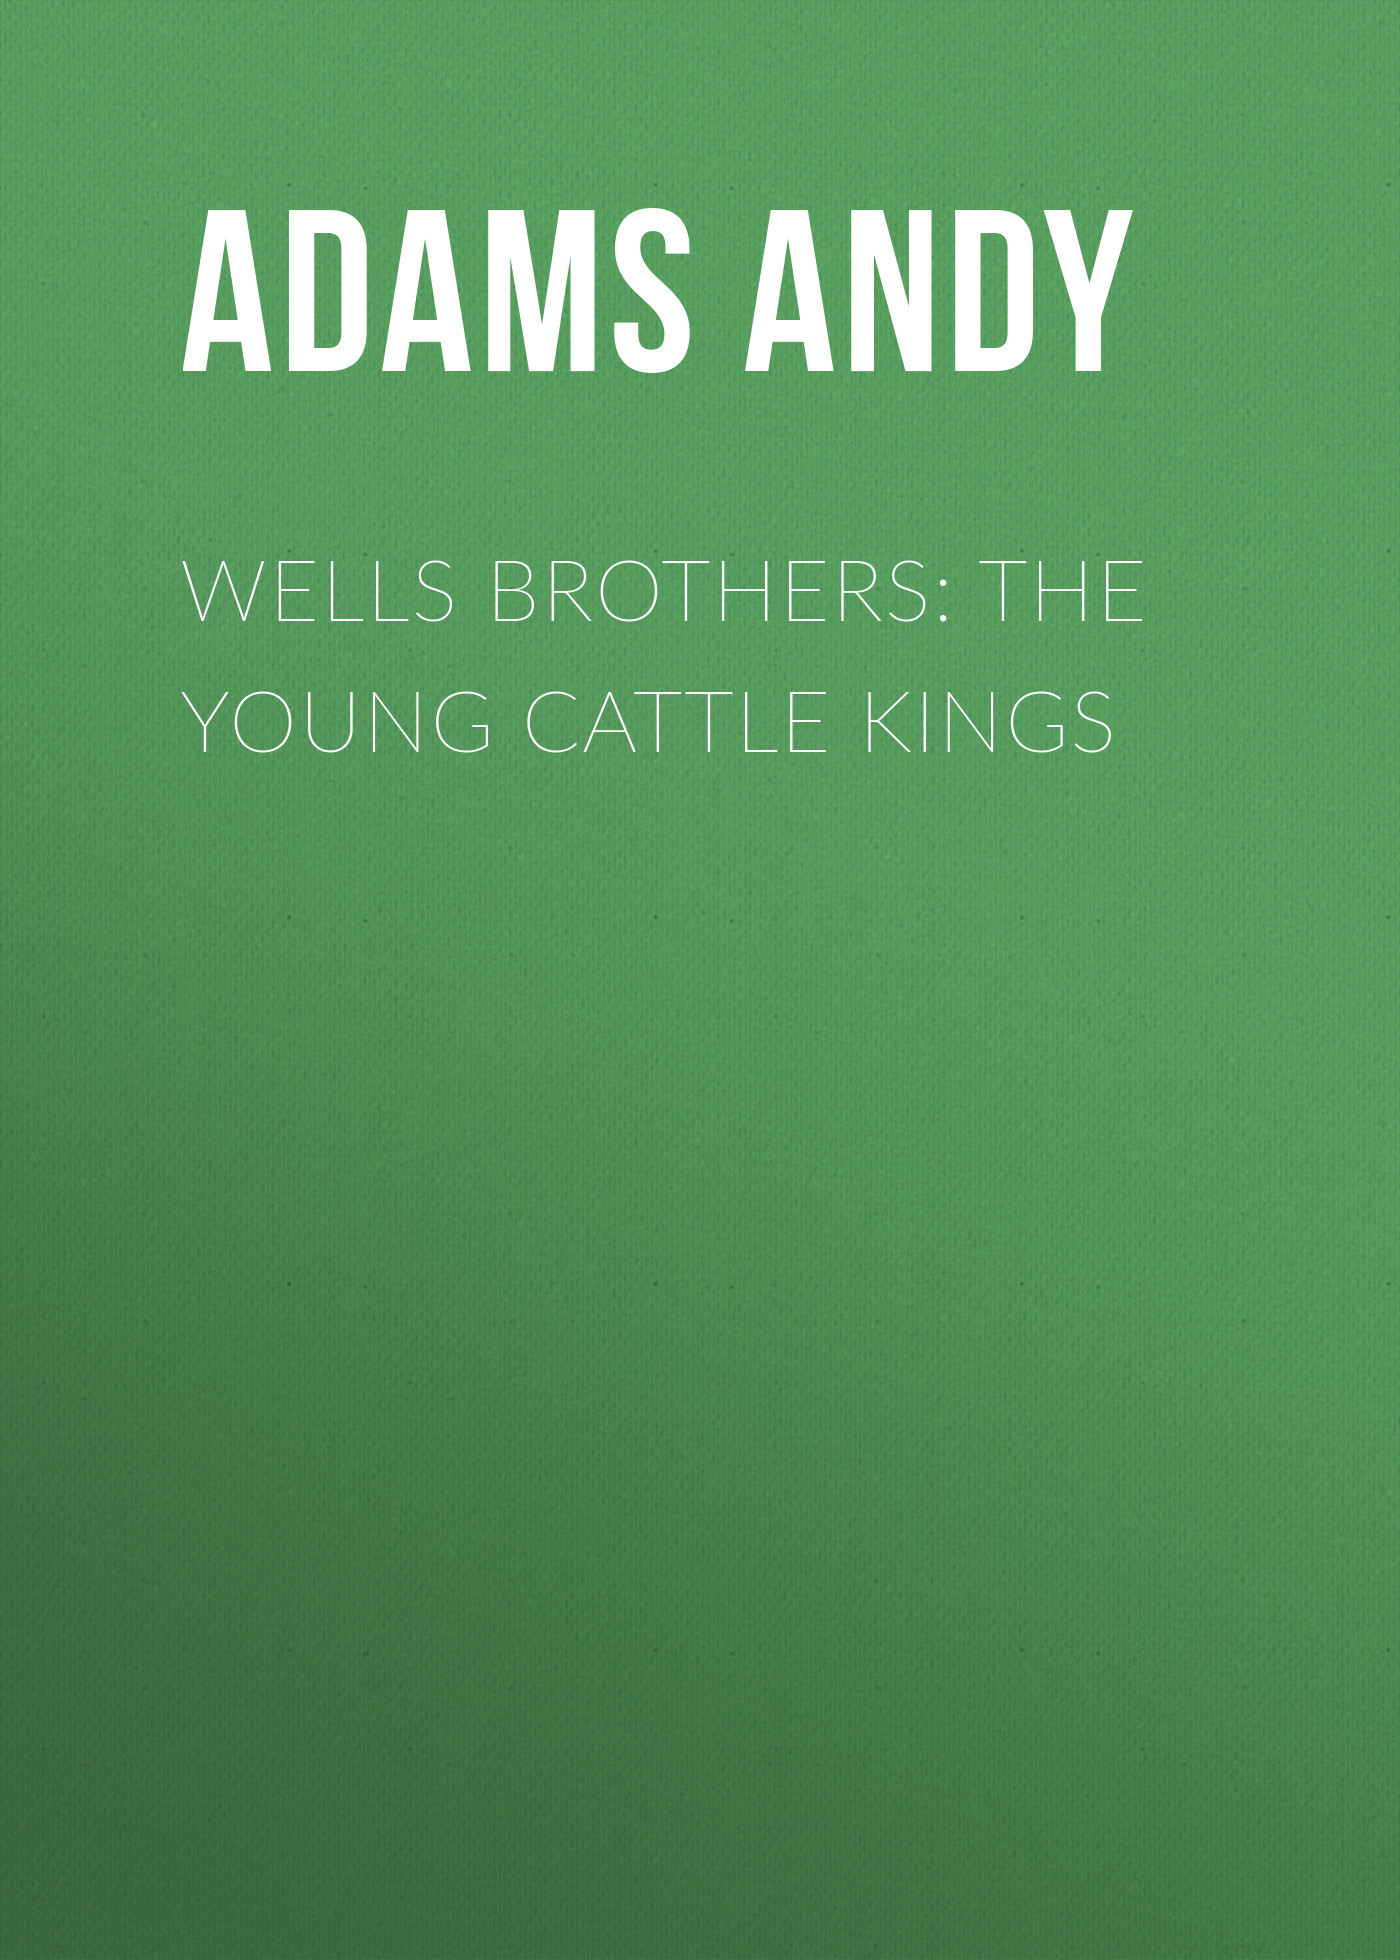 Adams Andy Wells Brothers: The Young Cattle Kings 120 pcs cattle bone